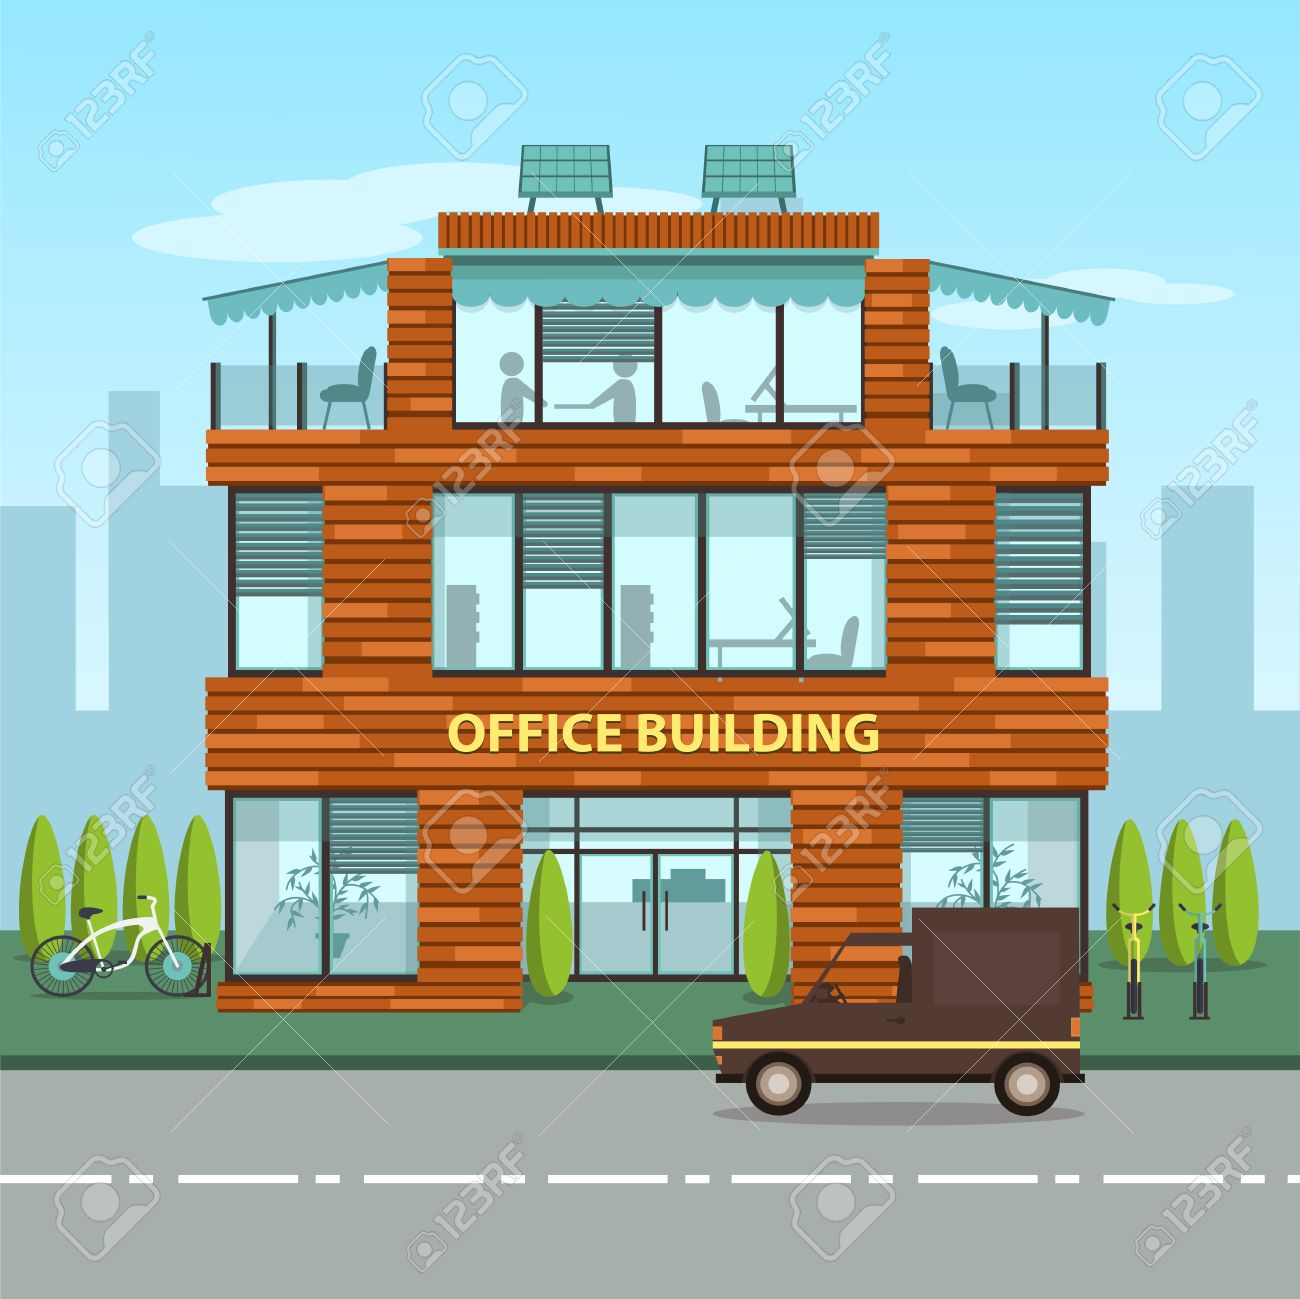 Modern Office Building In Cartoon Flat Style. Interior And Exterior